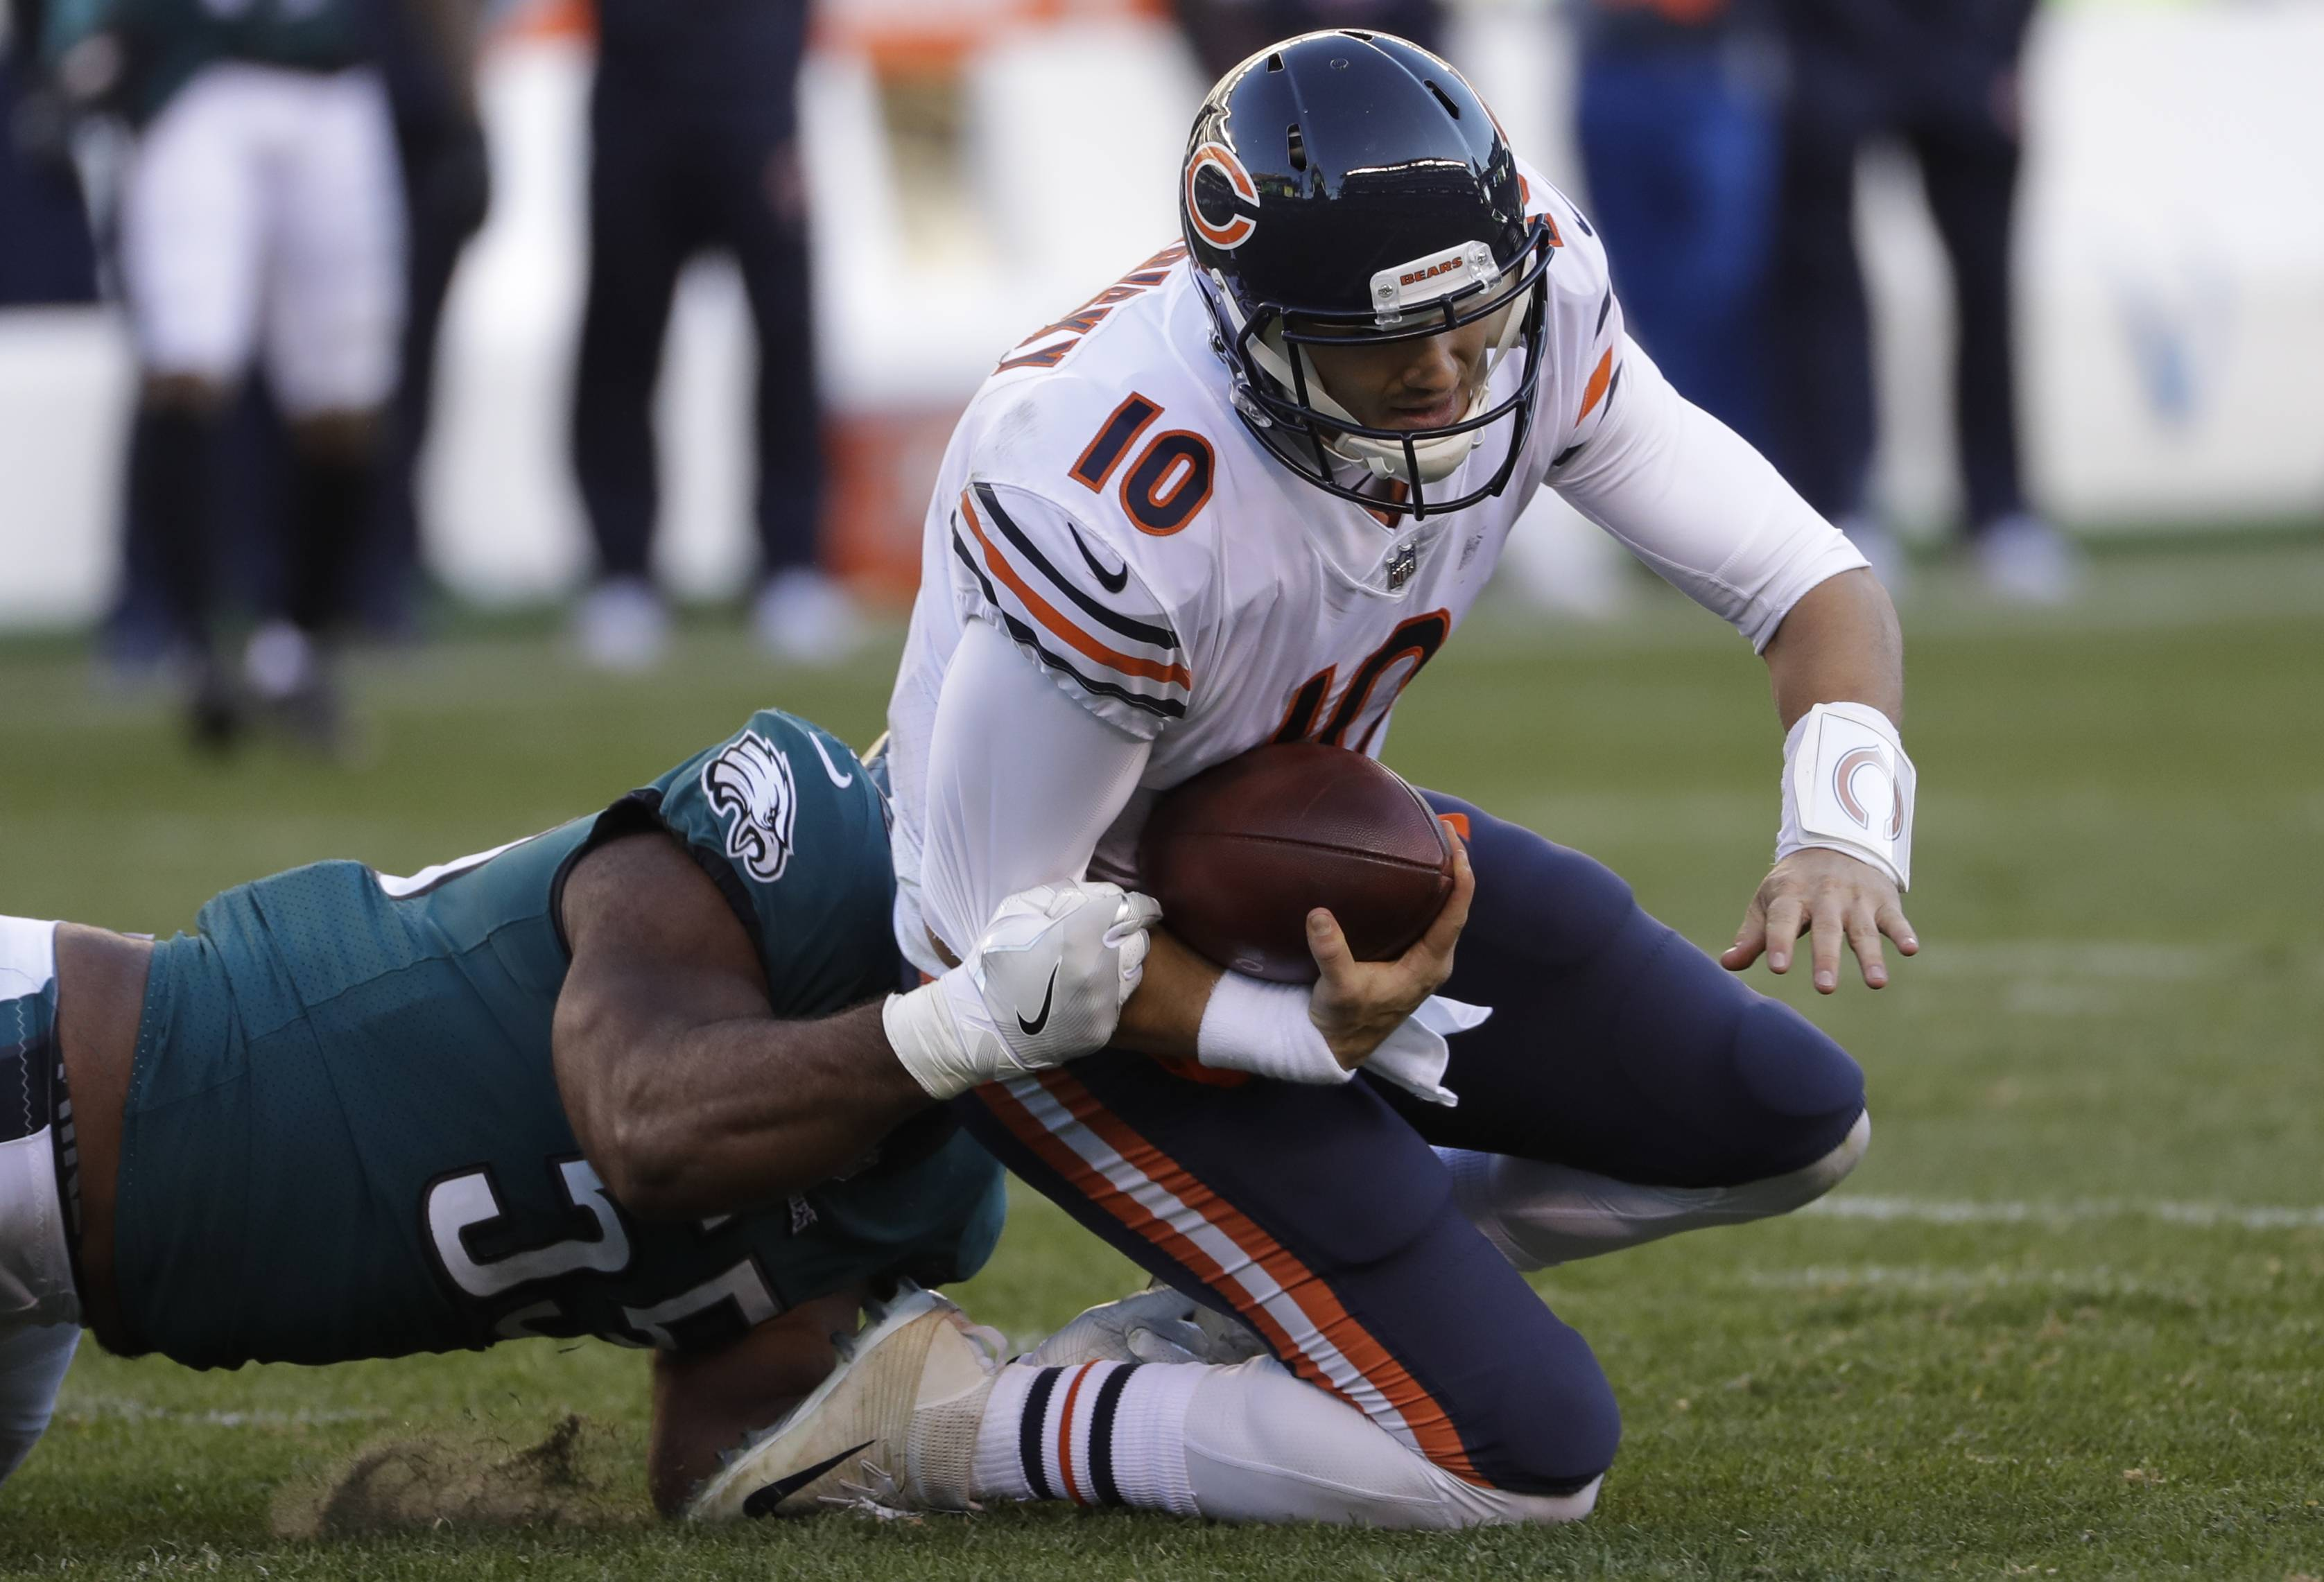 Fox not worried about Trubisky's progress with Chicago Bears